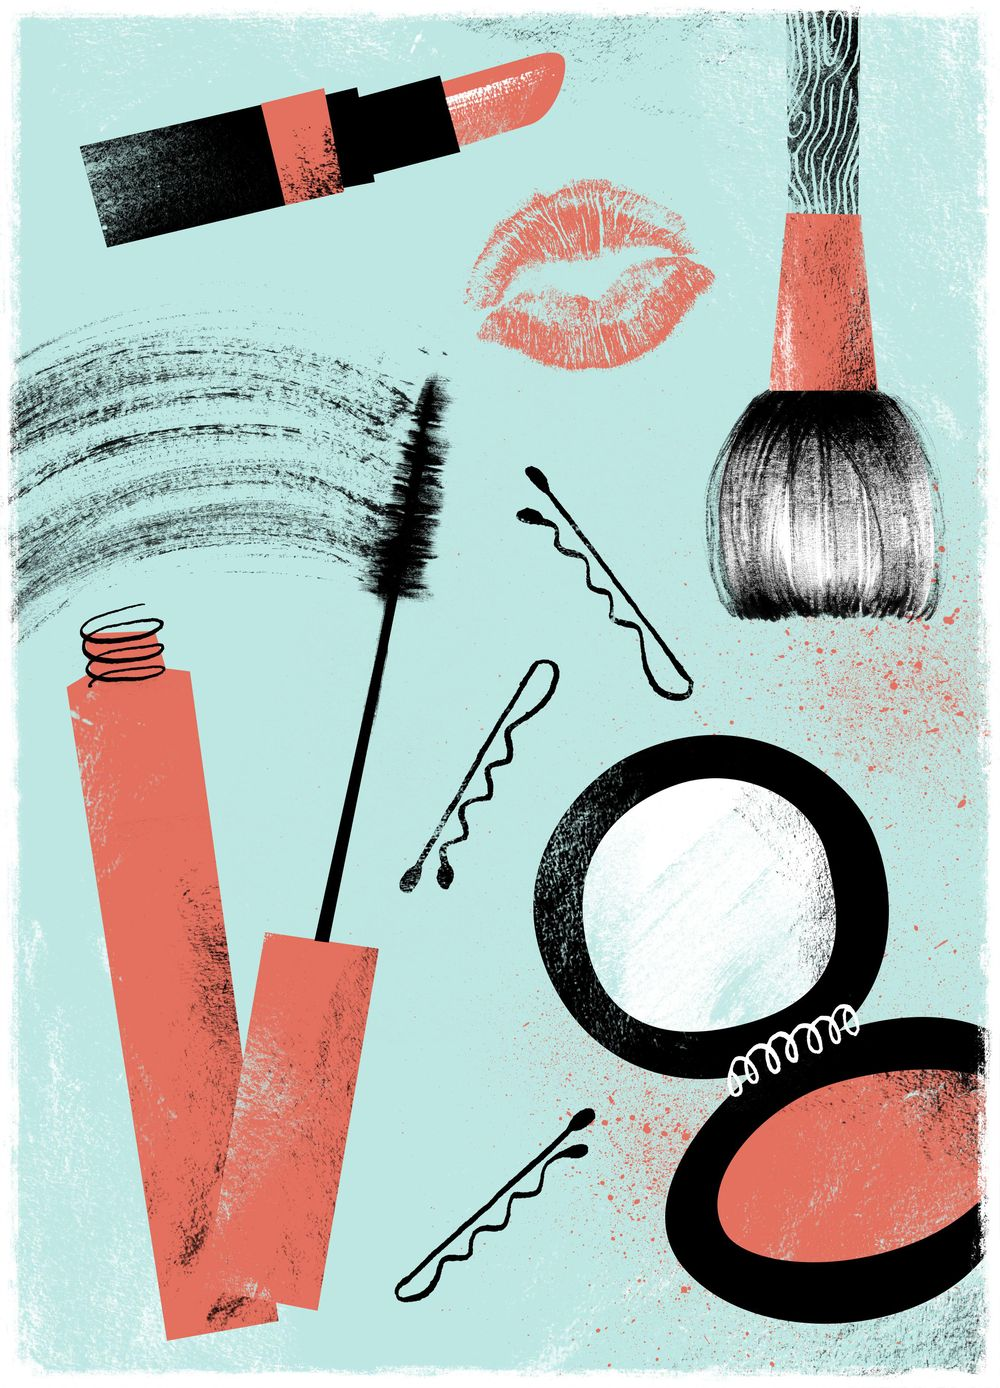 Inky Make-up Tools - image 7 - student project